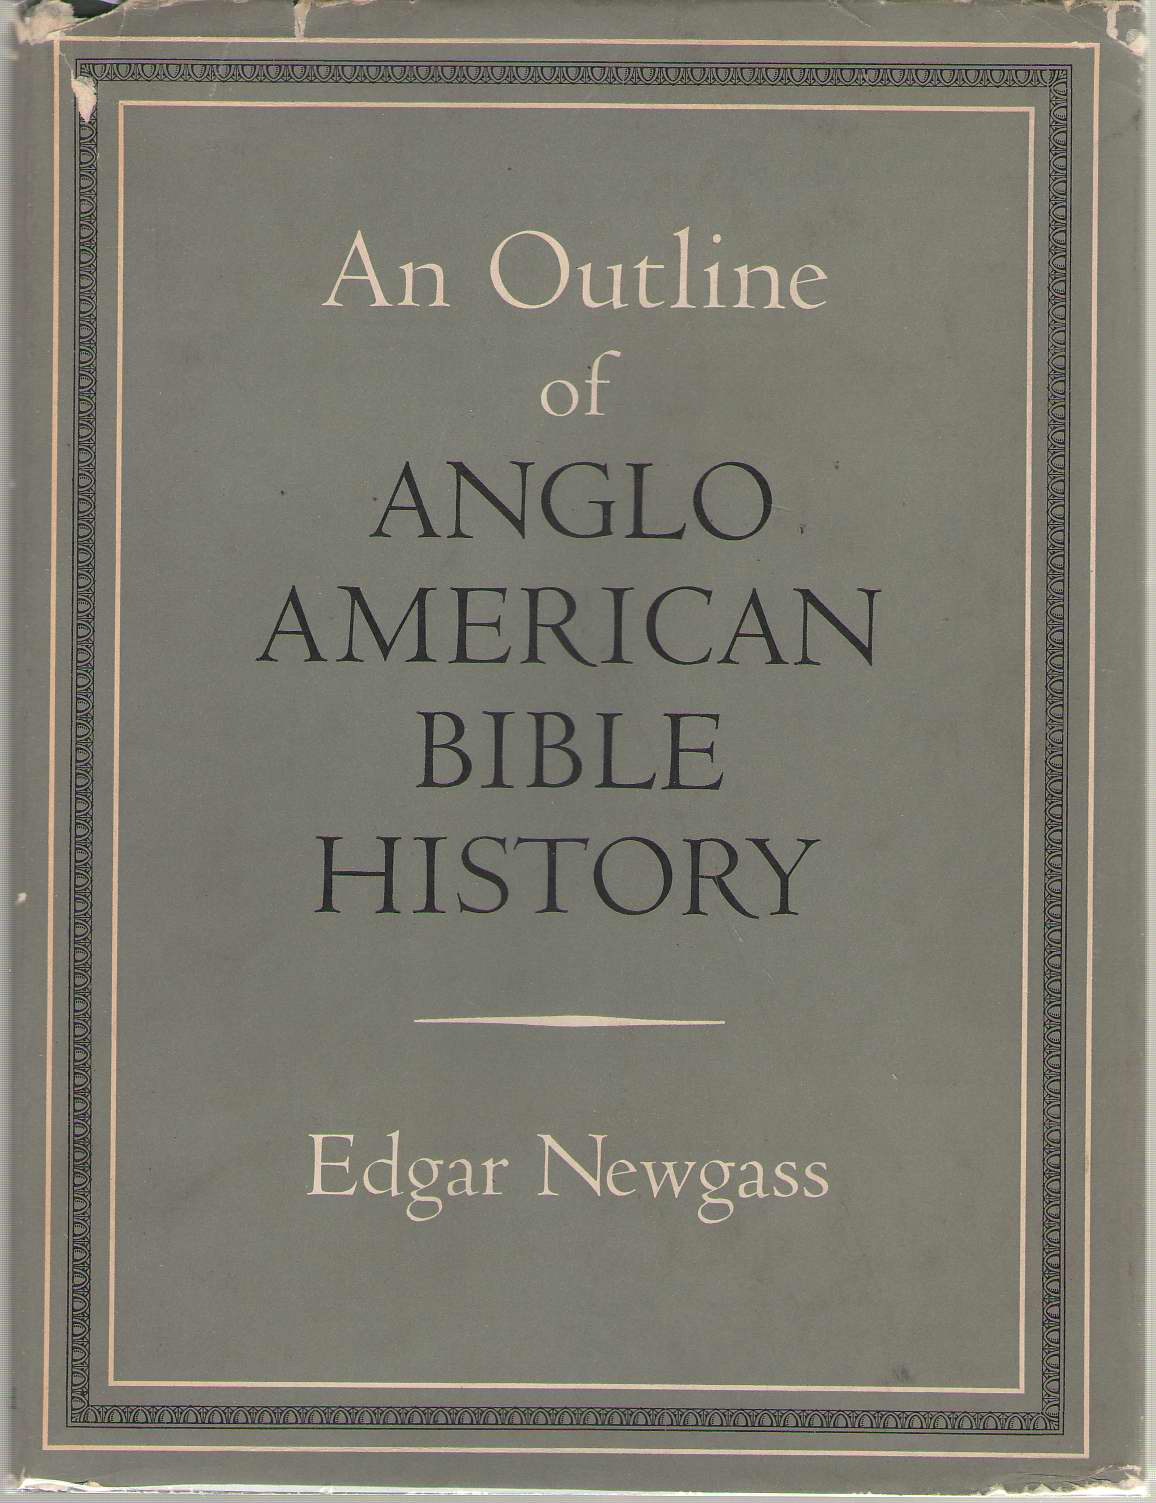 An Outline of Anglo American Bible History, Newgate, Edgar